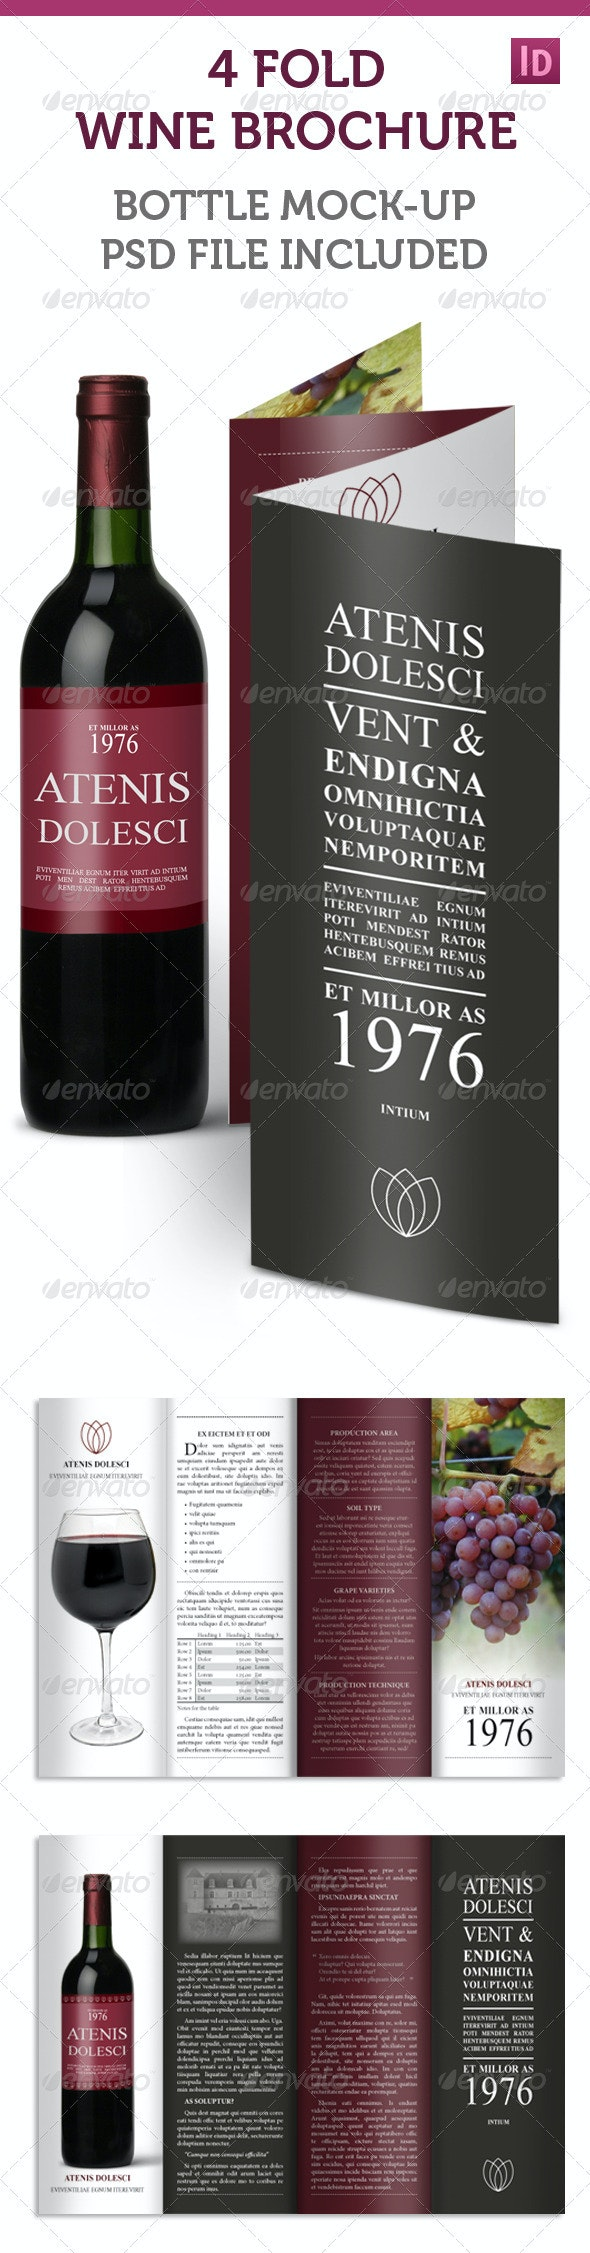 4-fold Accordion Wine Brochure - Corporate Brochures